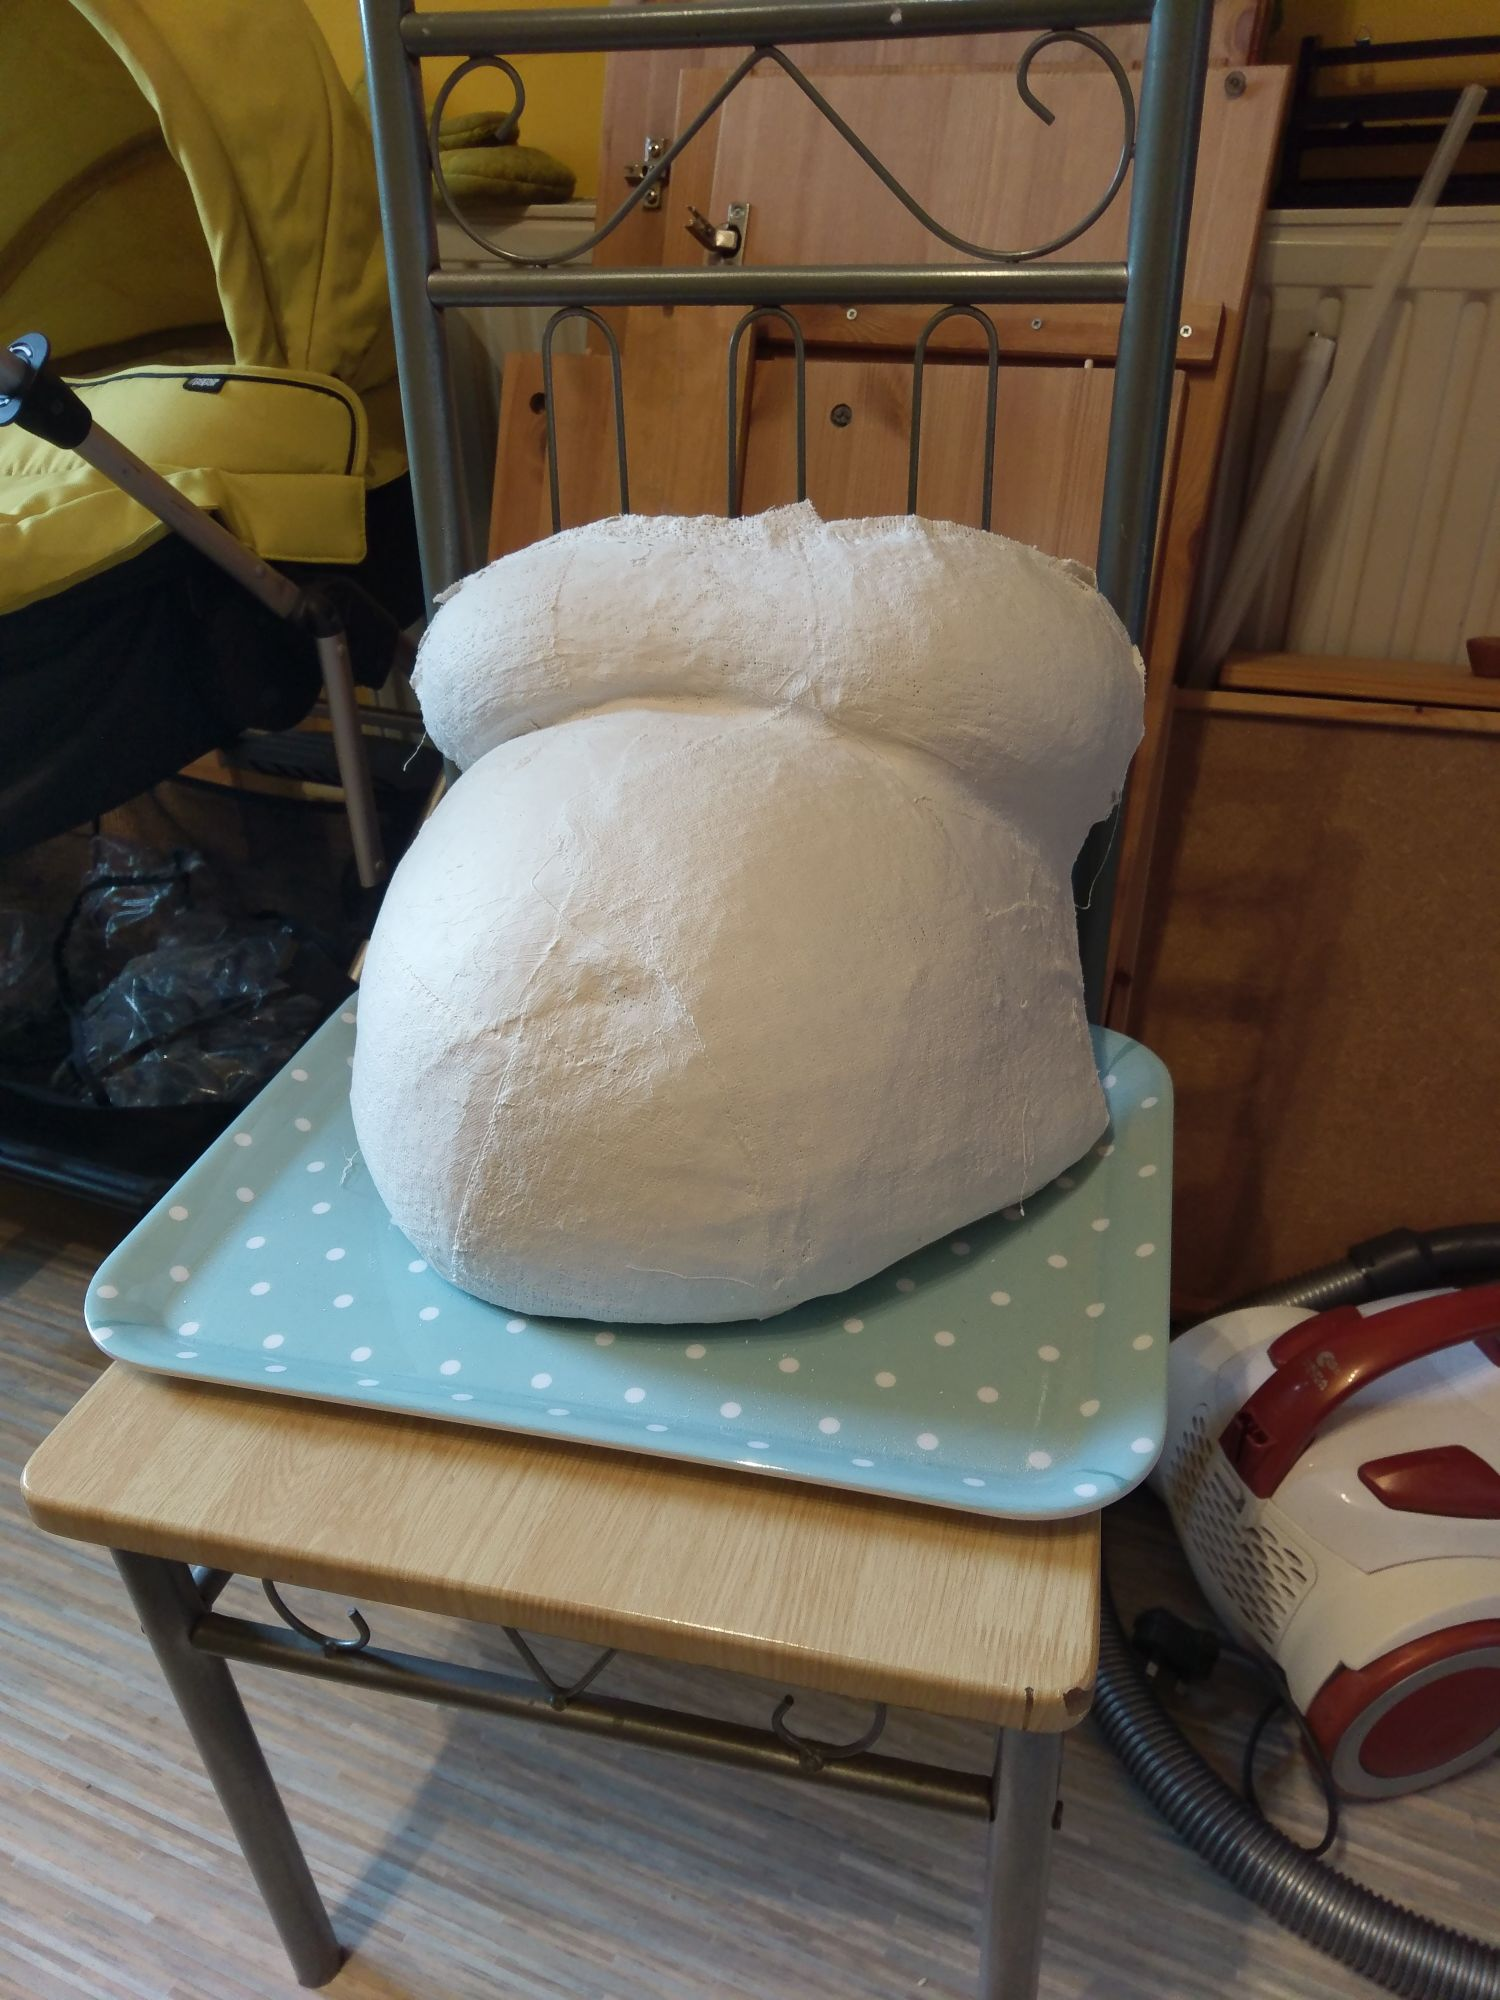 A belly cast that is unfinished. It has rough edges and only a couple of layers of plaster.